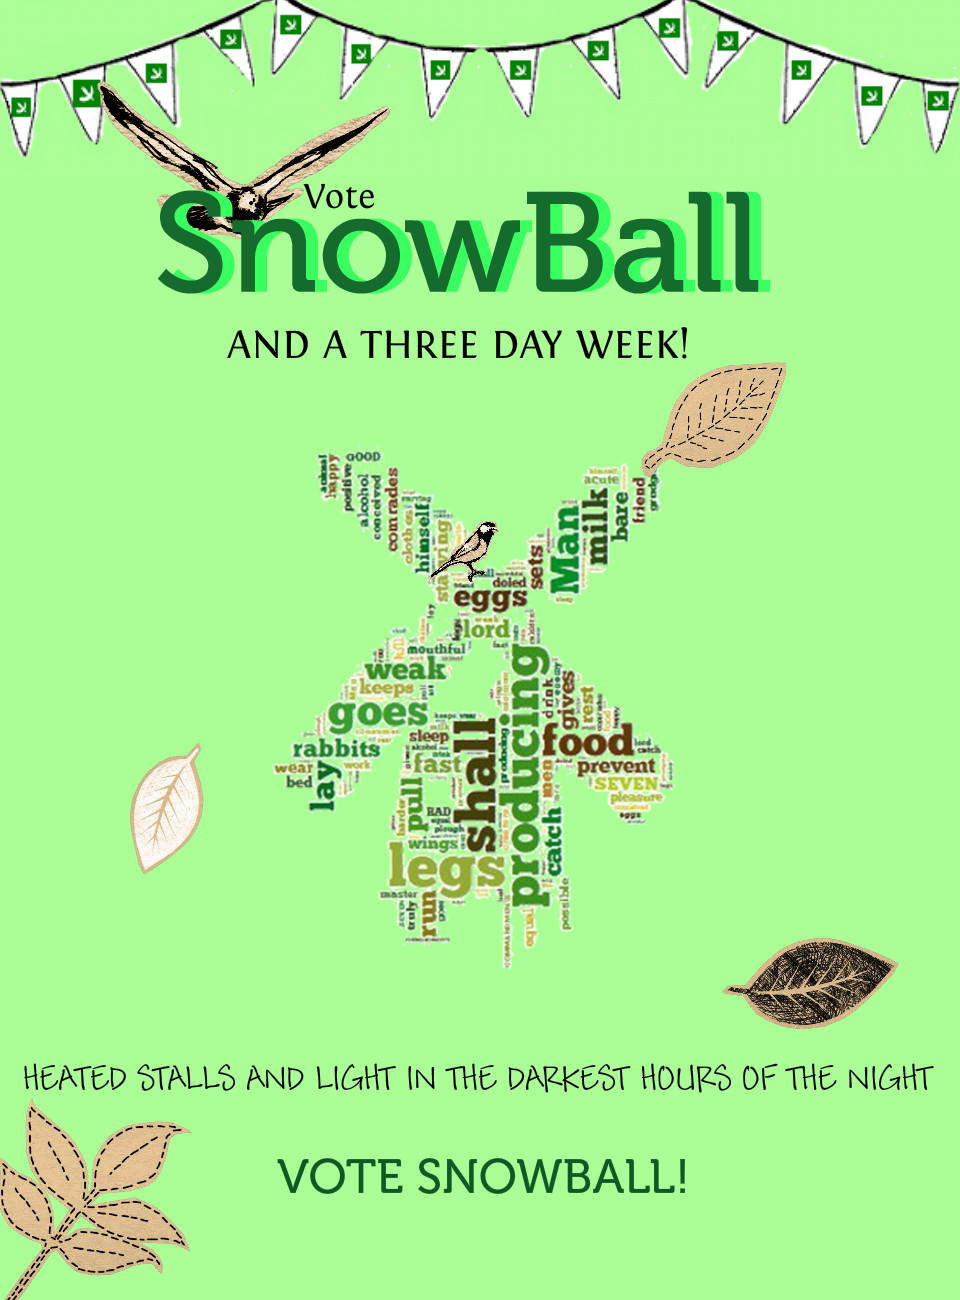 Animal Farm Snowball Campaign Poster Source